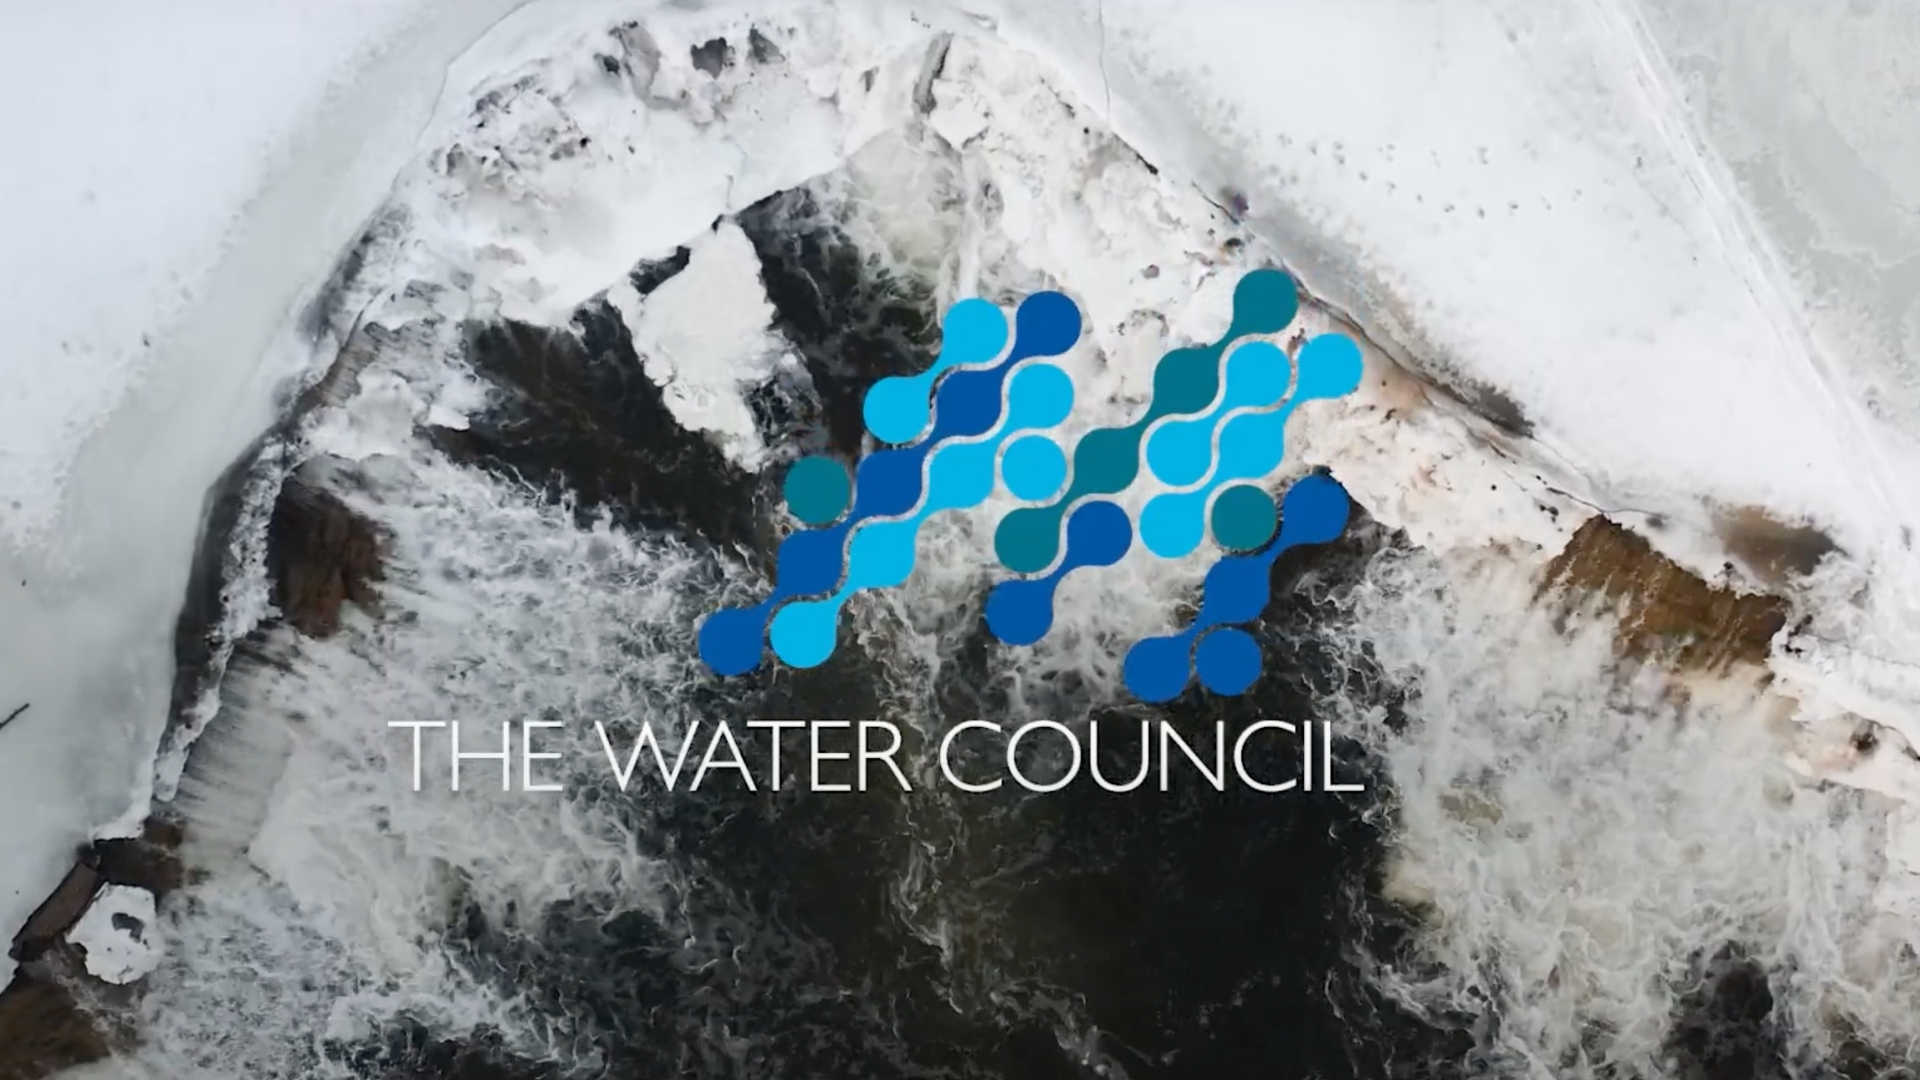 A water fall in winter shot from above by a drone with The Water Councils logo overlayed.